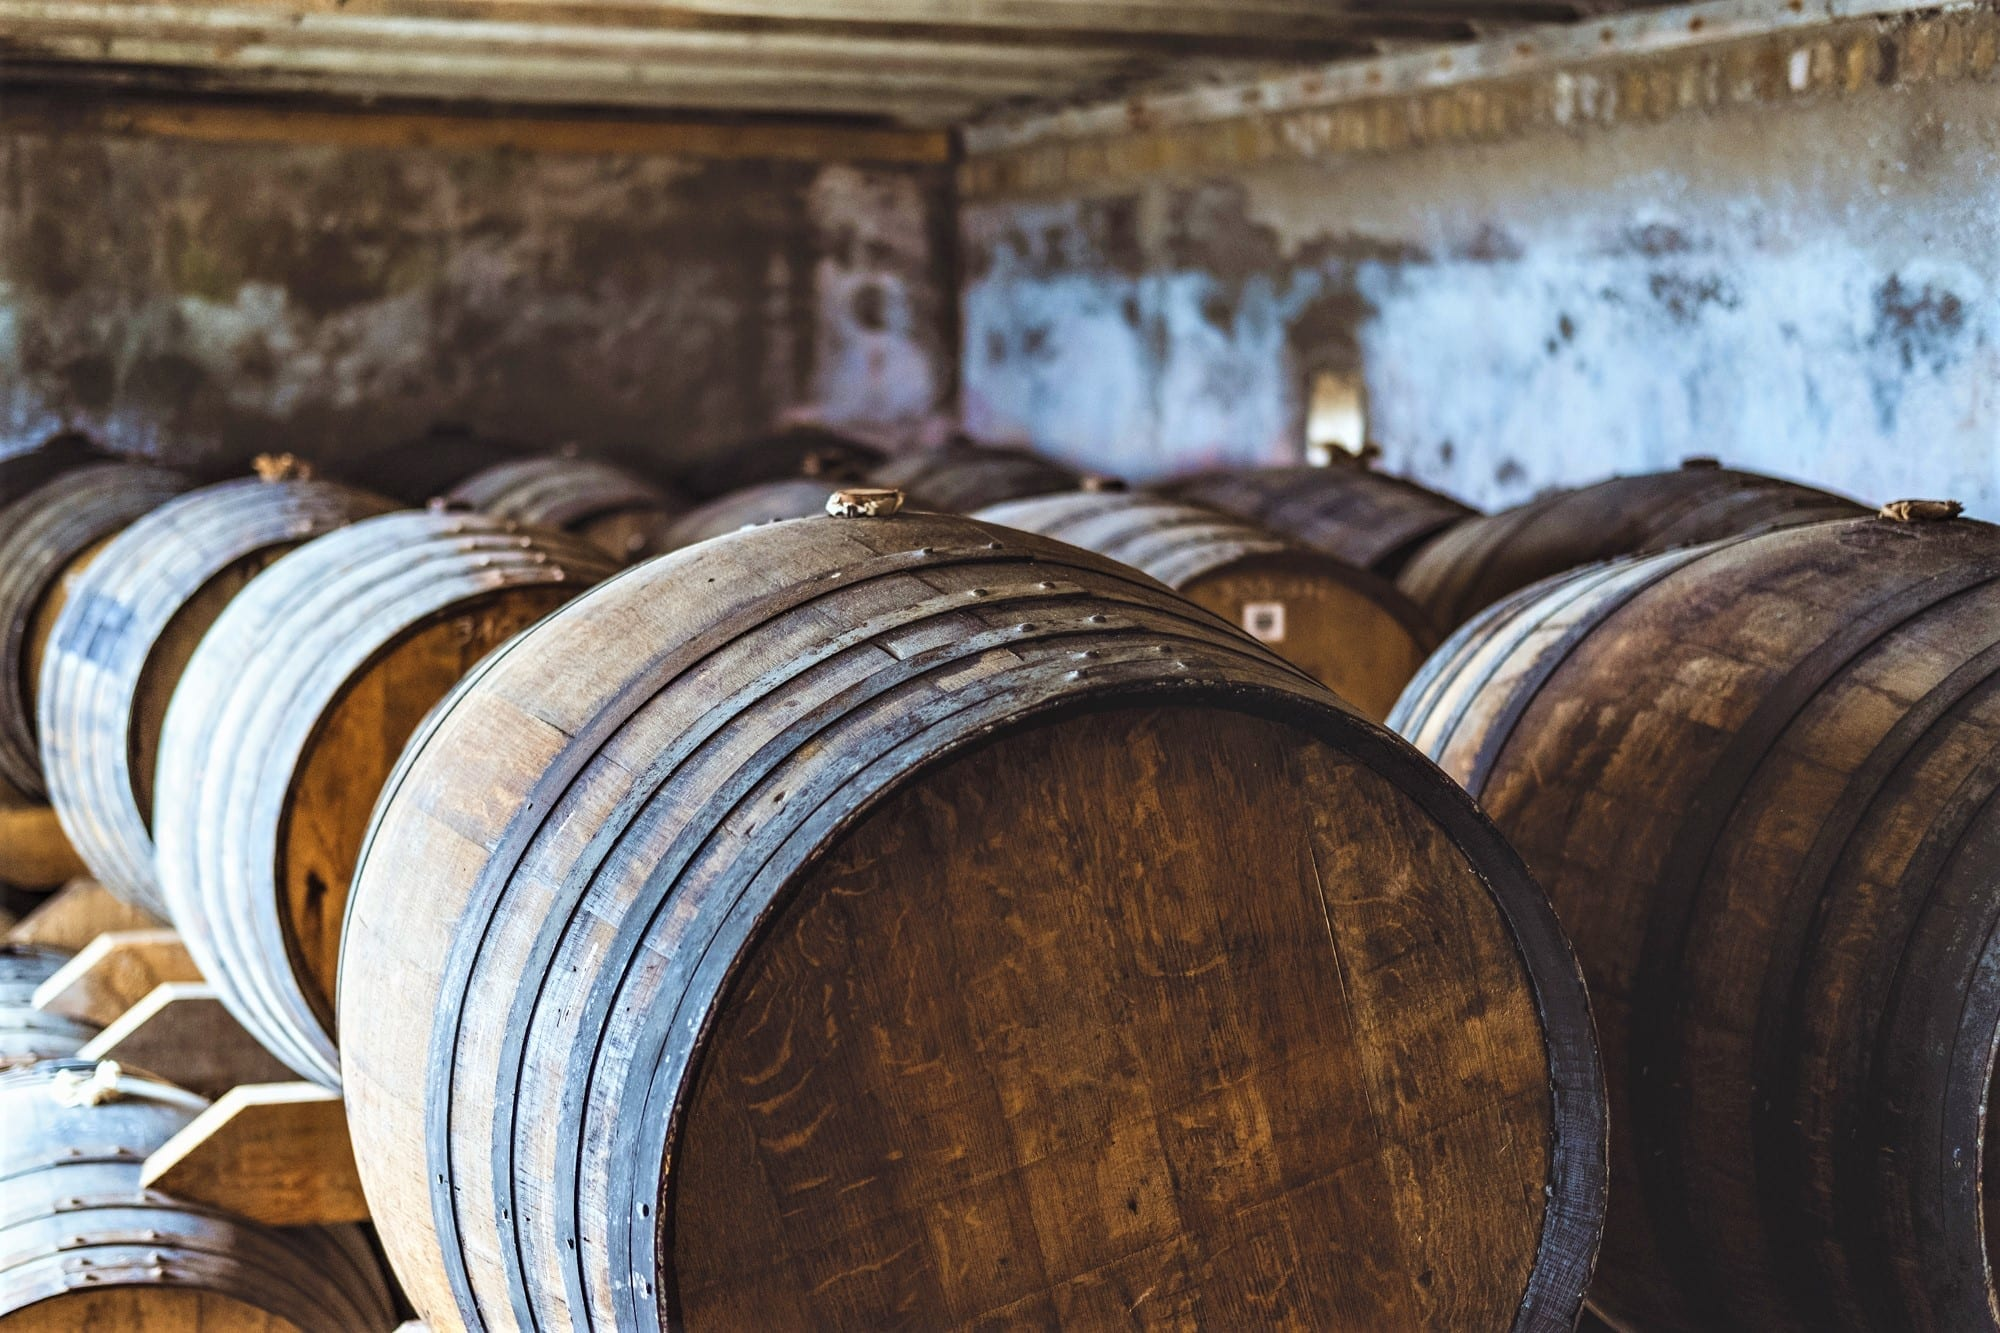 Lambay Whiskey Cask Program. Sea Cask Room Lambay Island Irish Whiskey Blog.